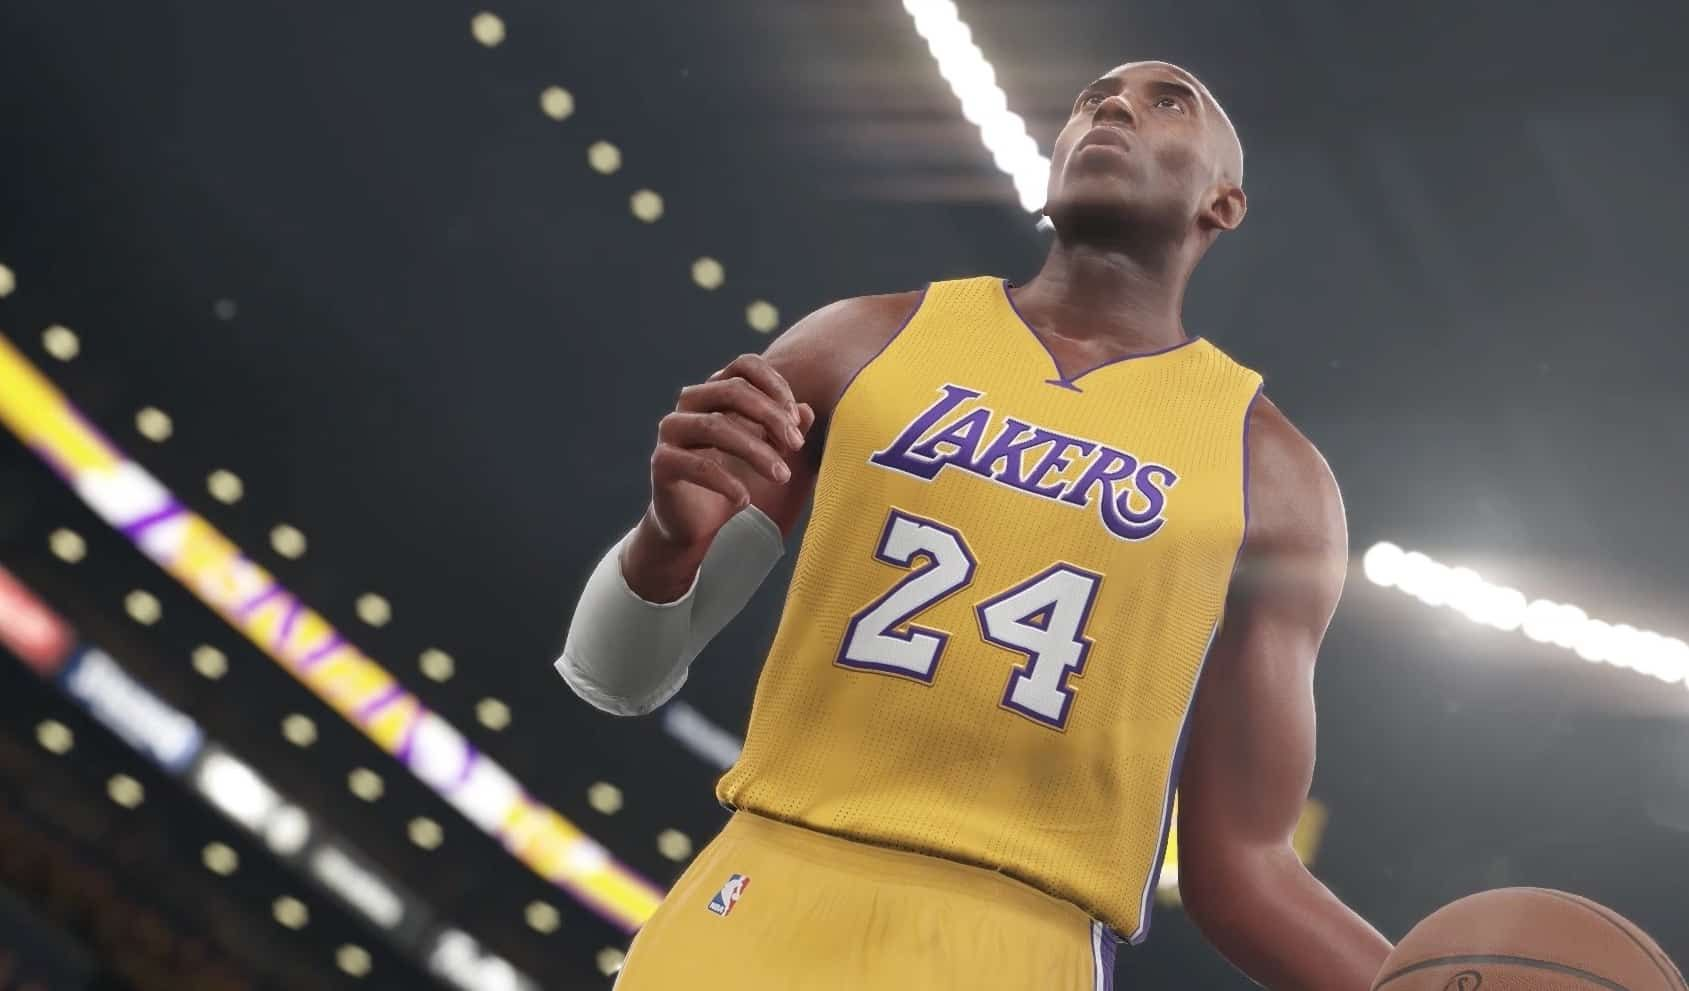 Nba 2k20 Honors Kobe Bryant With Jersey Patch Sports Gamers Online In 2020 Kobe Bryant Kobe Jersey